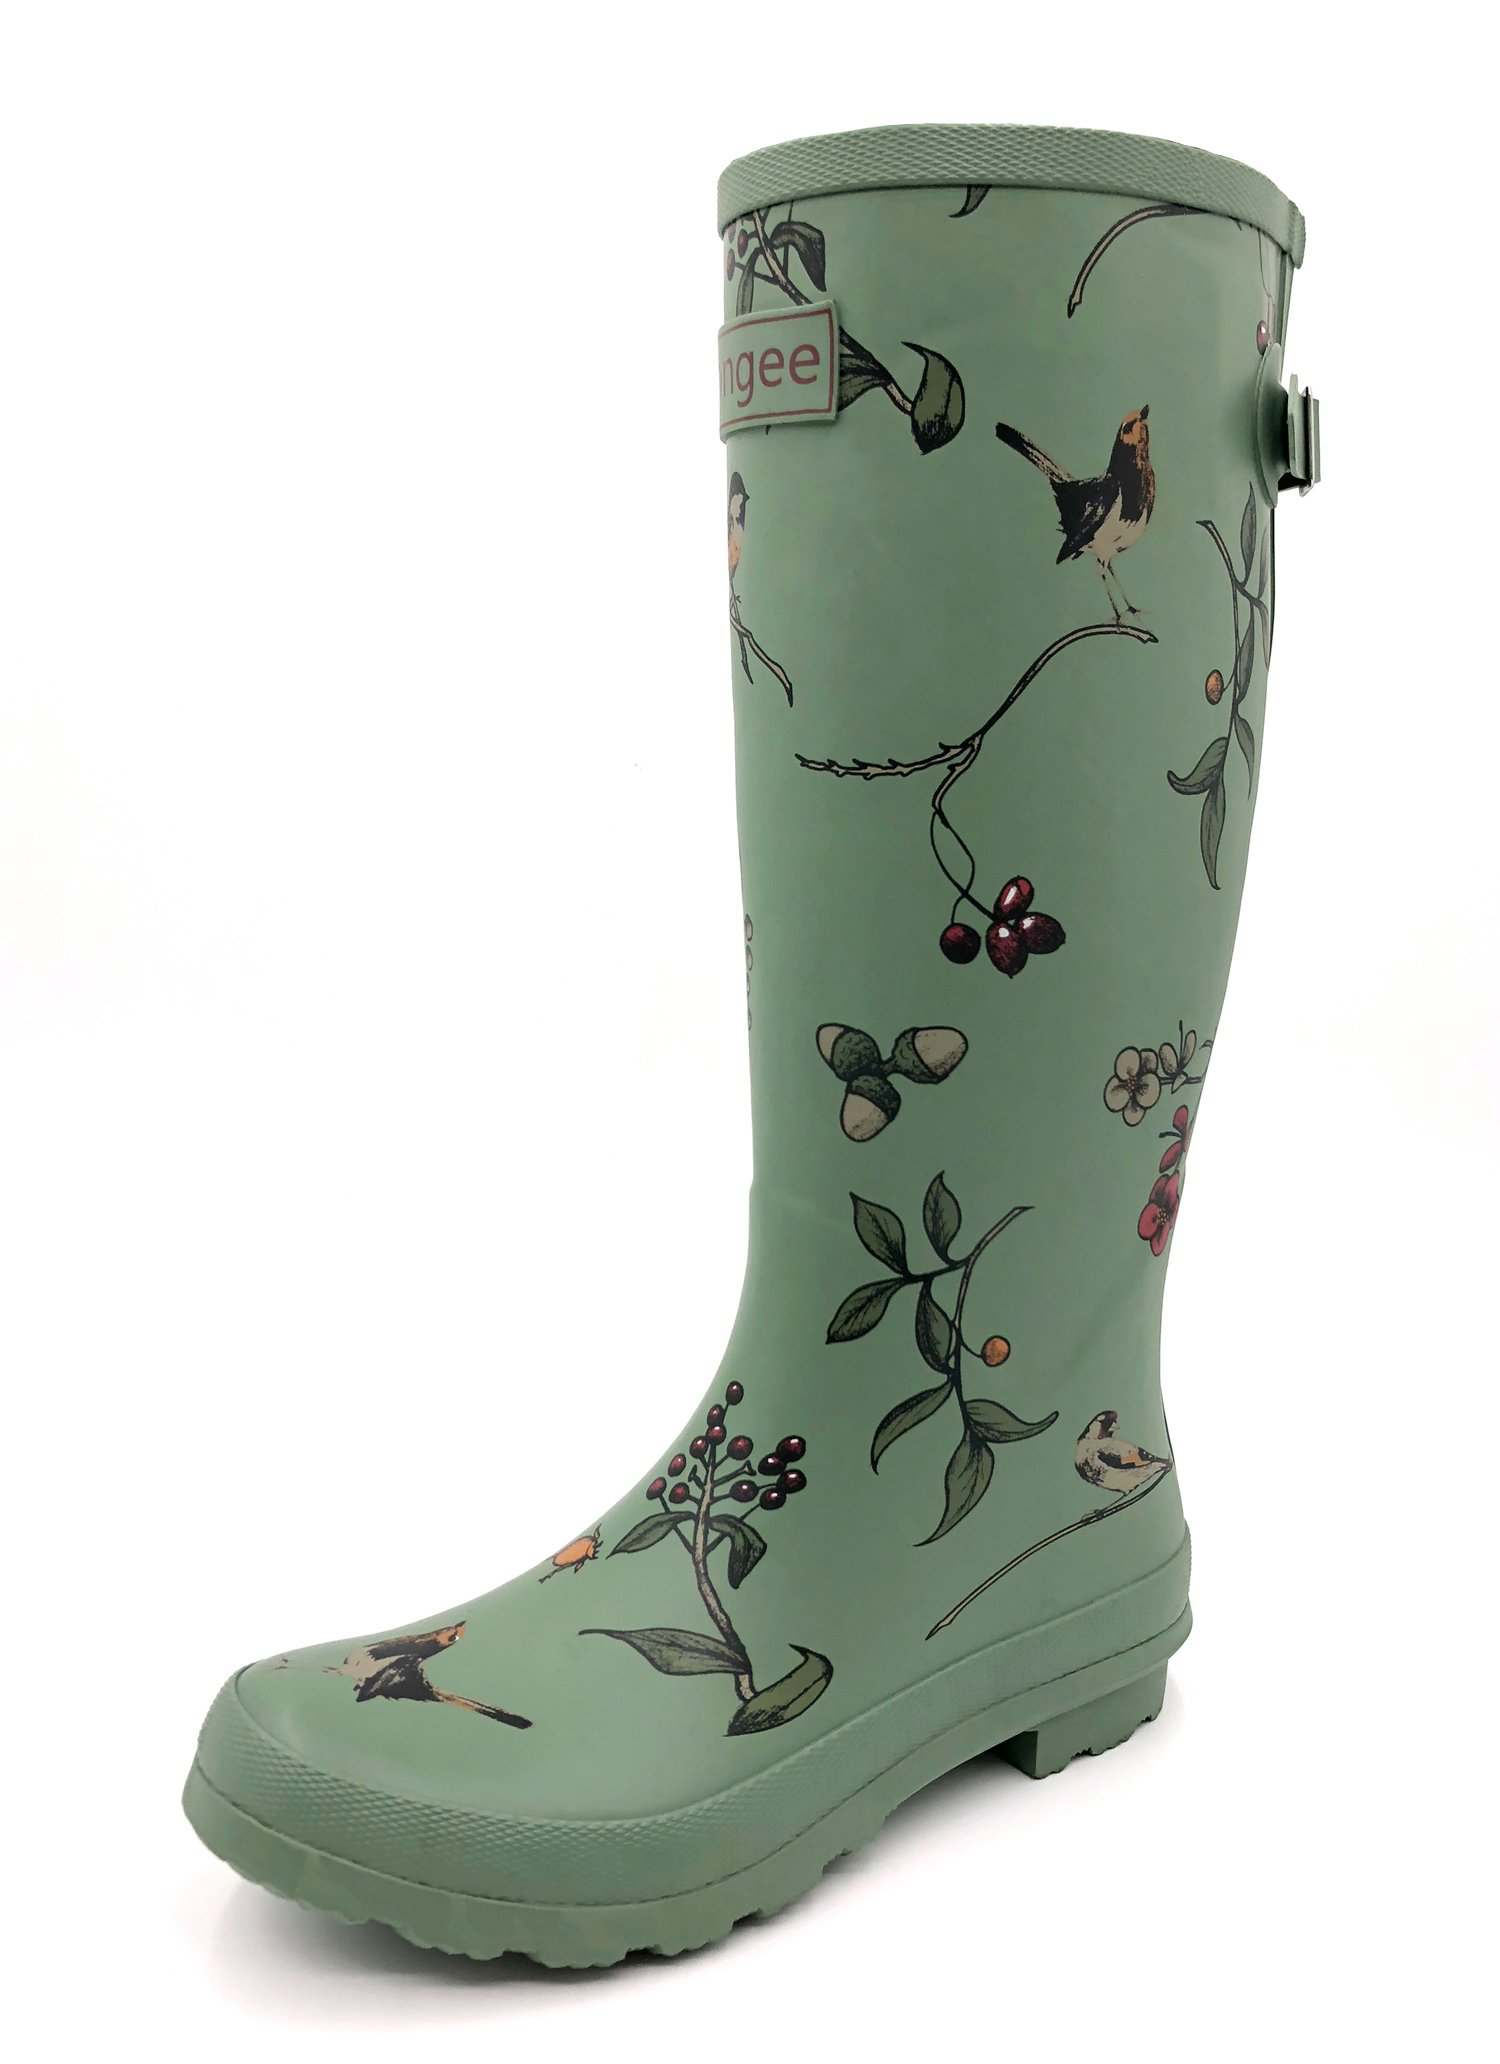 Rongee Bird Tree Printed Tall Rubber Rain Boots for Women with Adjustable Gusset and Oxford Bag Packed (9 B(M) US)